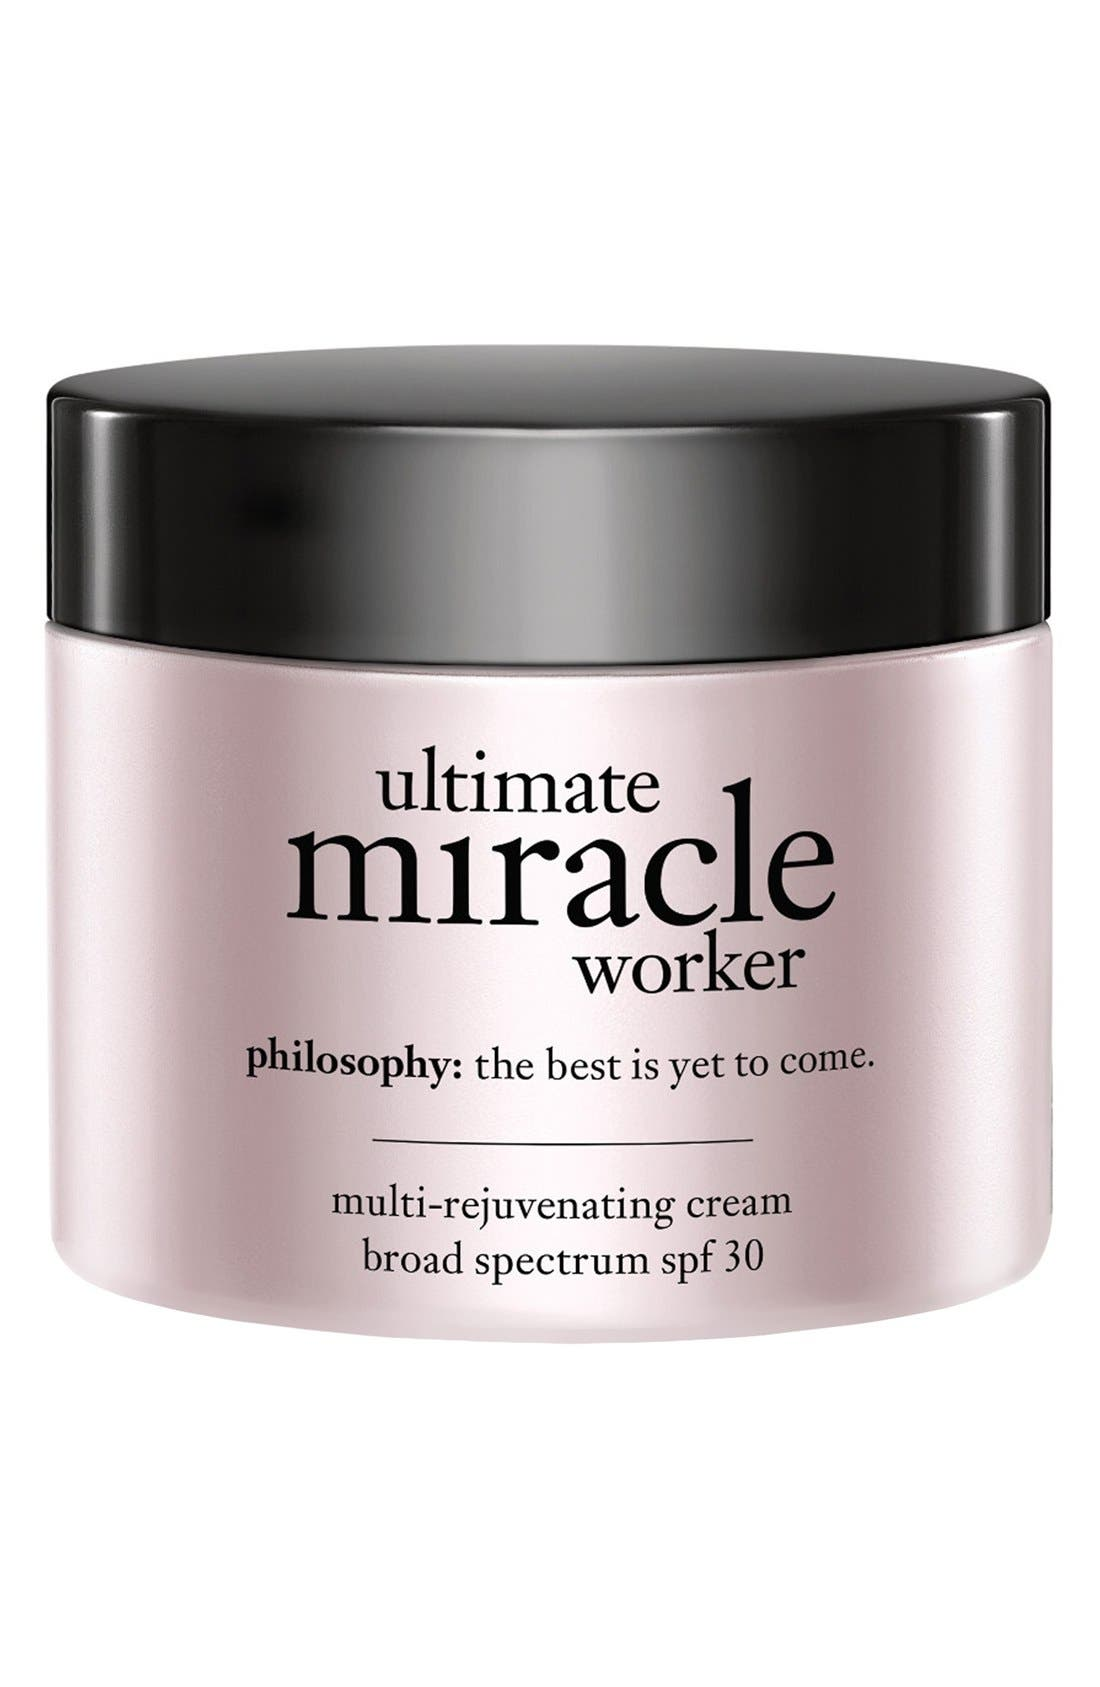 ultimate miracle worker multi-rejuvenating cream broad spectrum SPF 30,                             Alternate thumbnail 3, color,                             NO COLOR